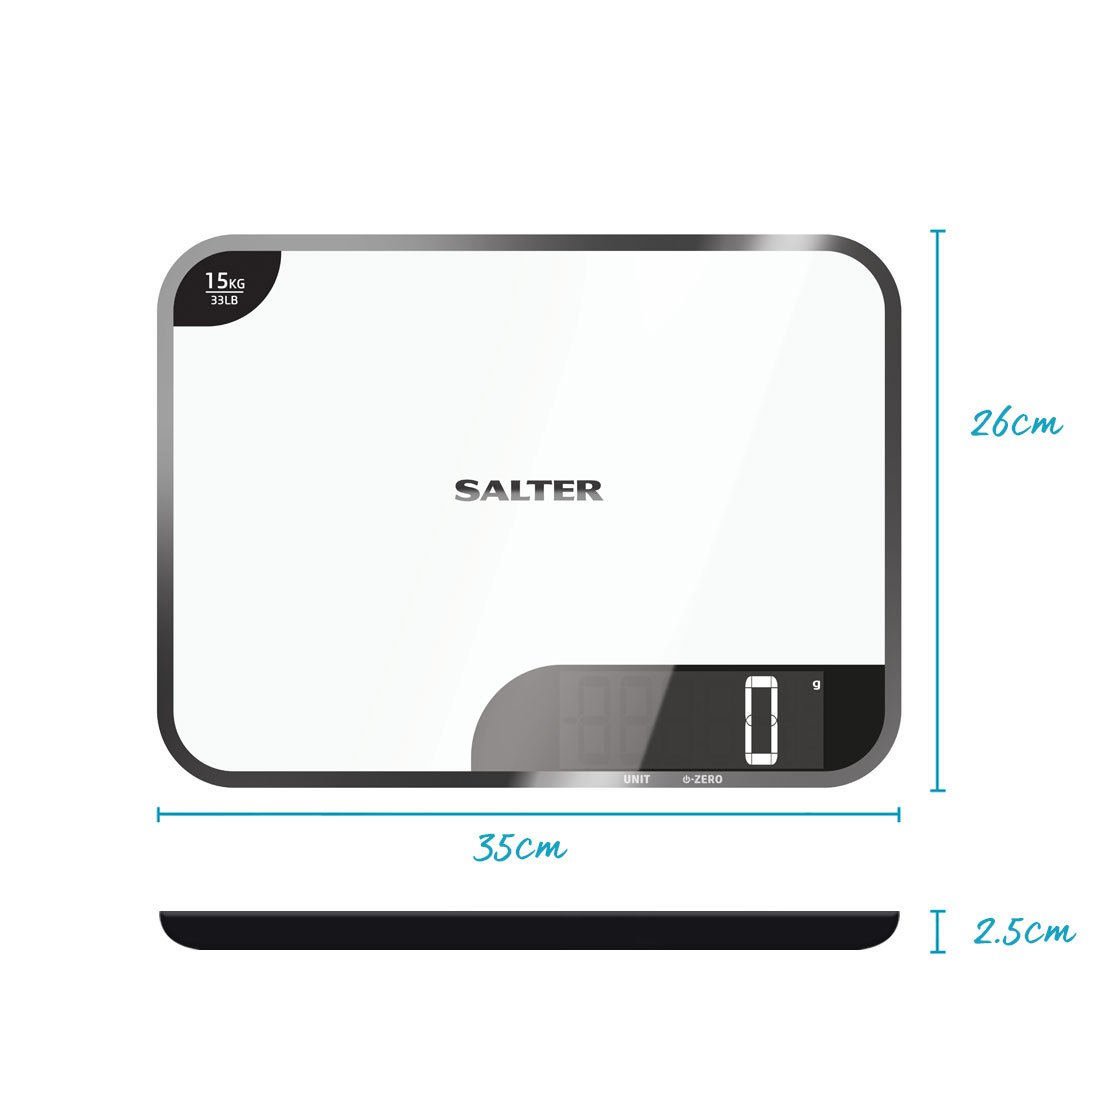 Salter Max Chopping Board Digital Kitchen Weighing Scales - Extra ...